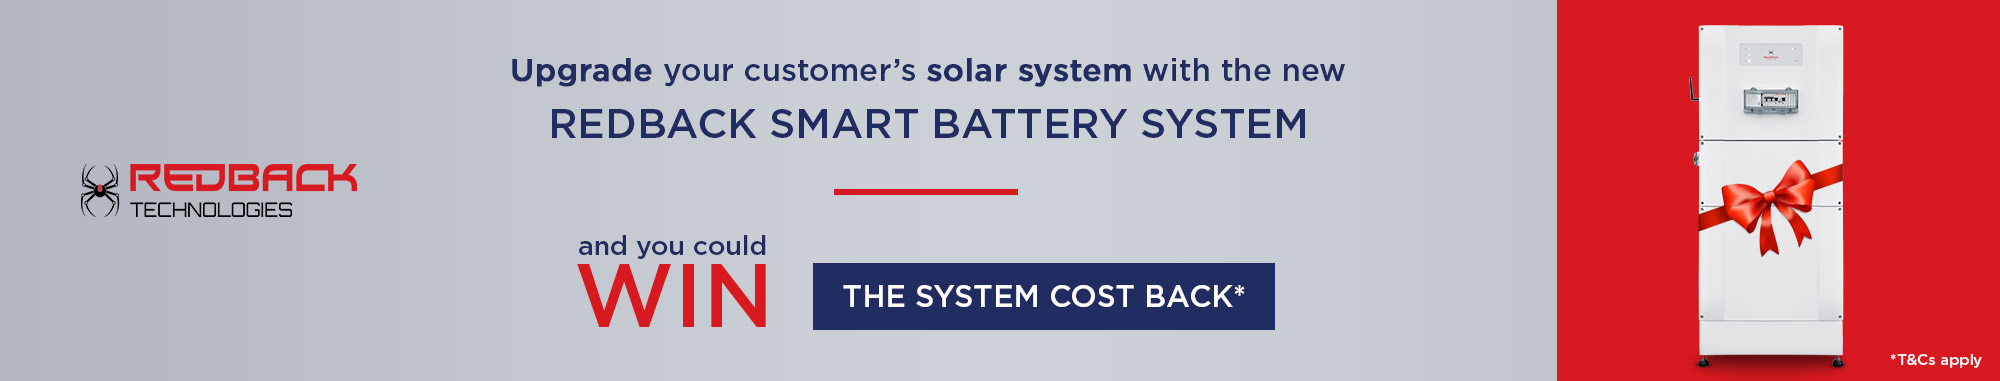 smart-battery-competition-2021-landing-page-banner-INSTALLER-2-1